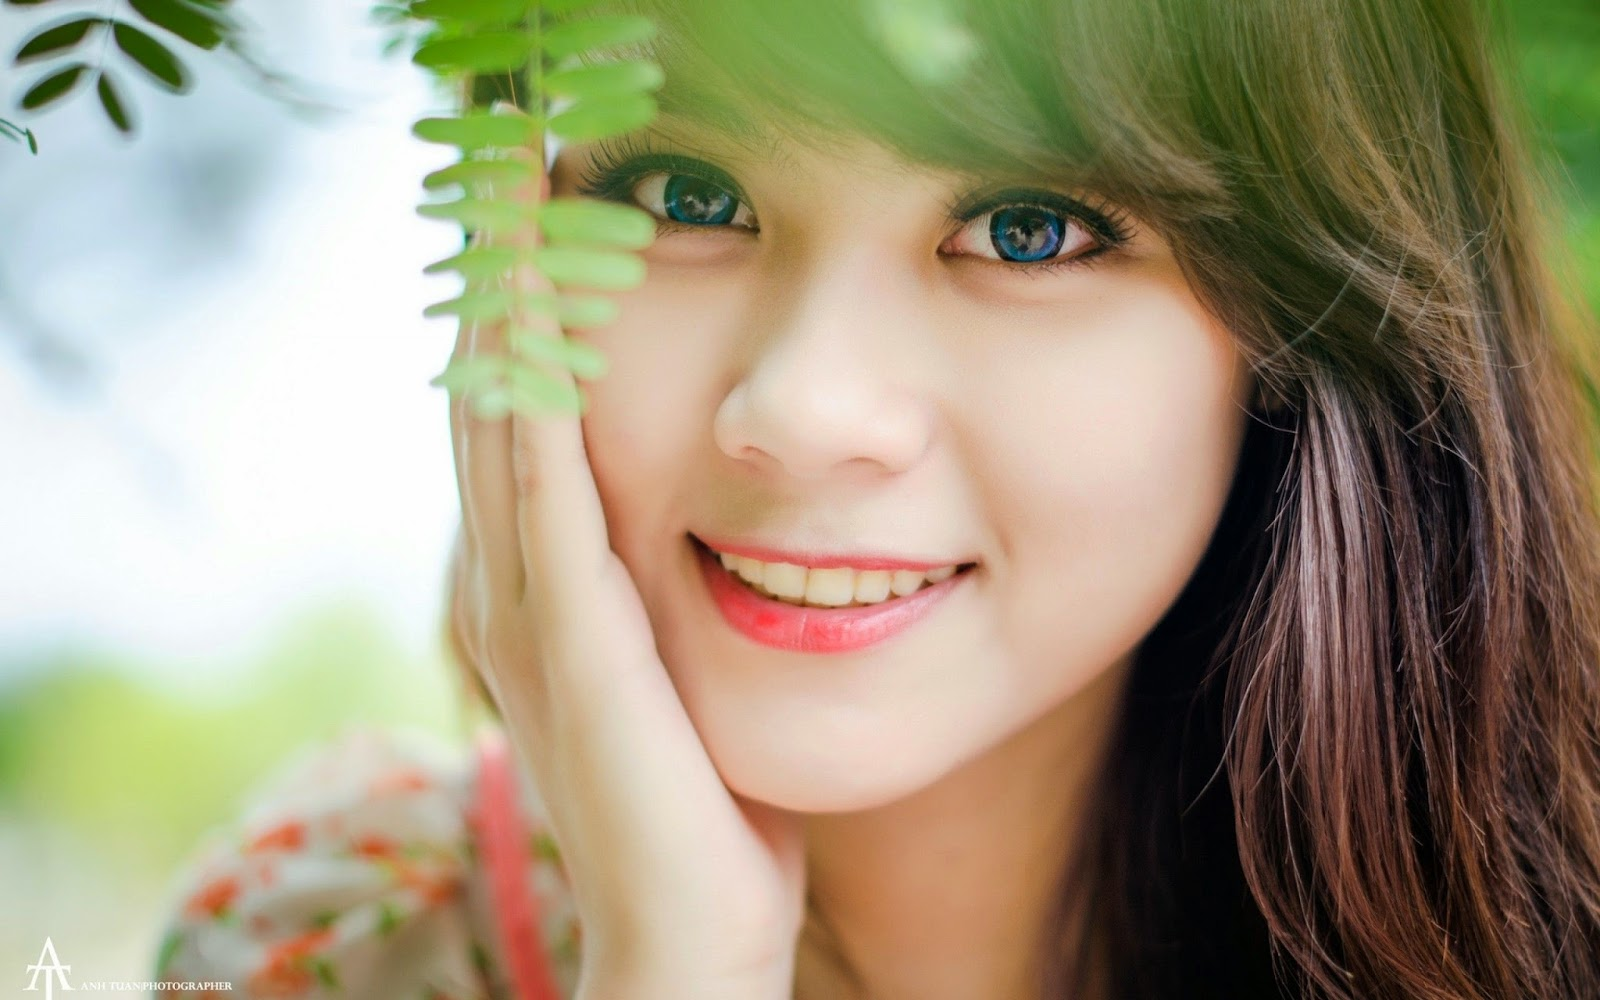 60+ Cute and Beautiful Girls Wallpapers (HD Widescreen) | Most beautiful places in the world ...